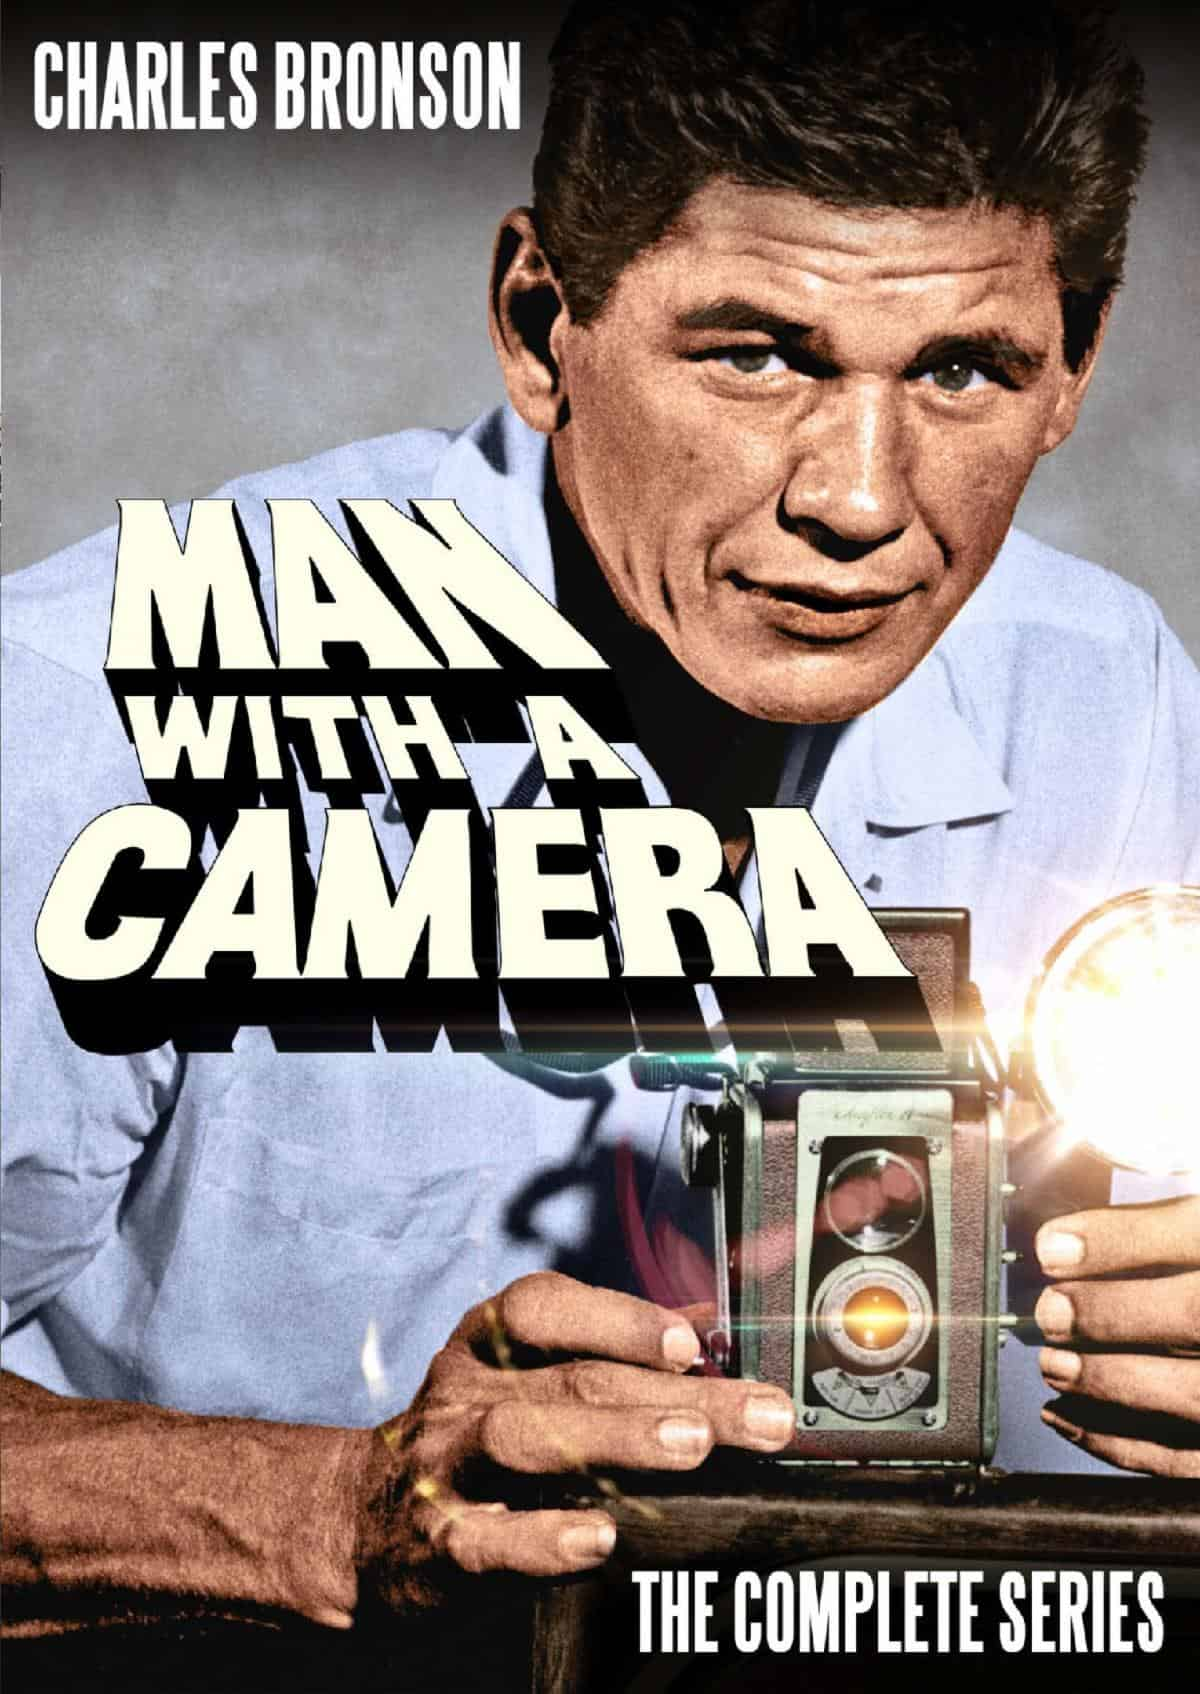 Charles Bronson Stars in Man with a Camera: The Complete Series: on digital & DVD For the First Time on 5/12 2